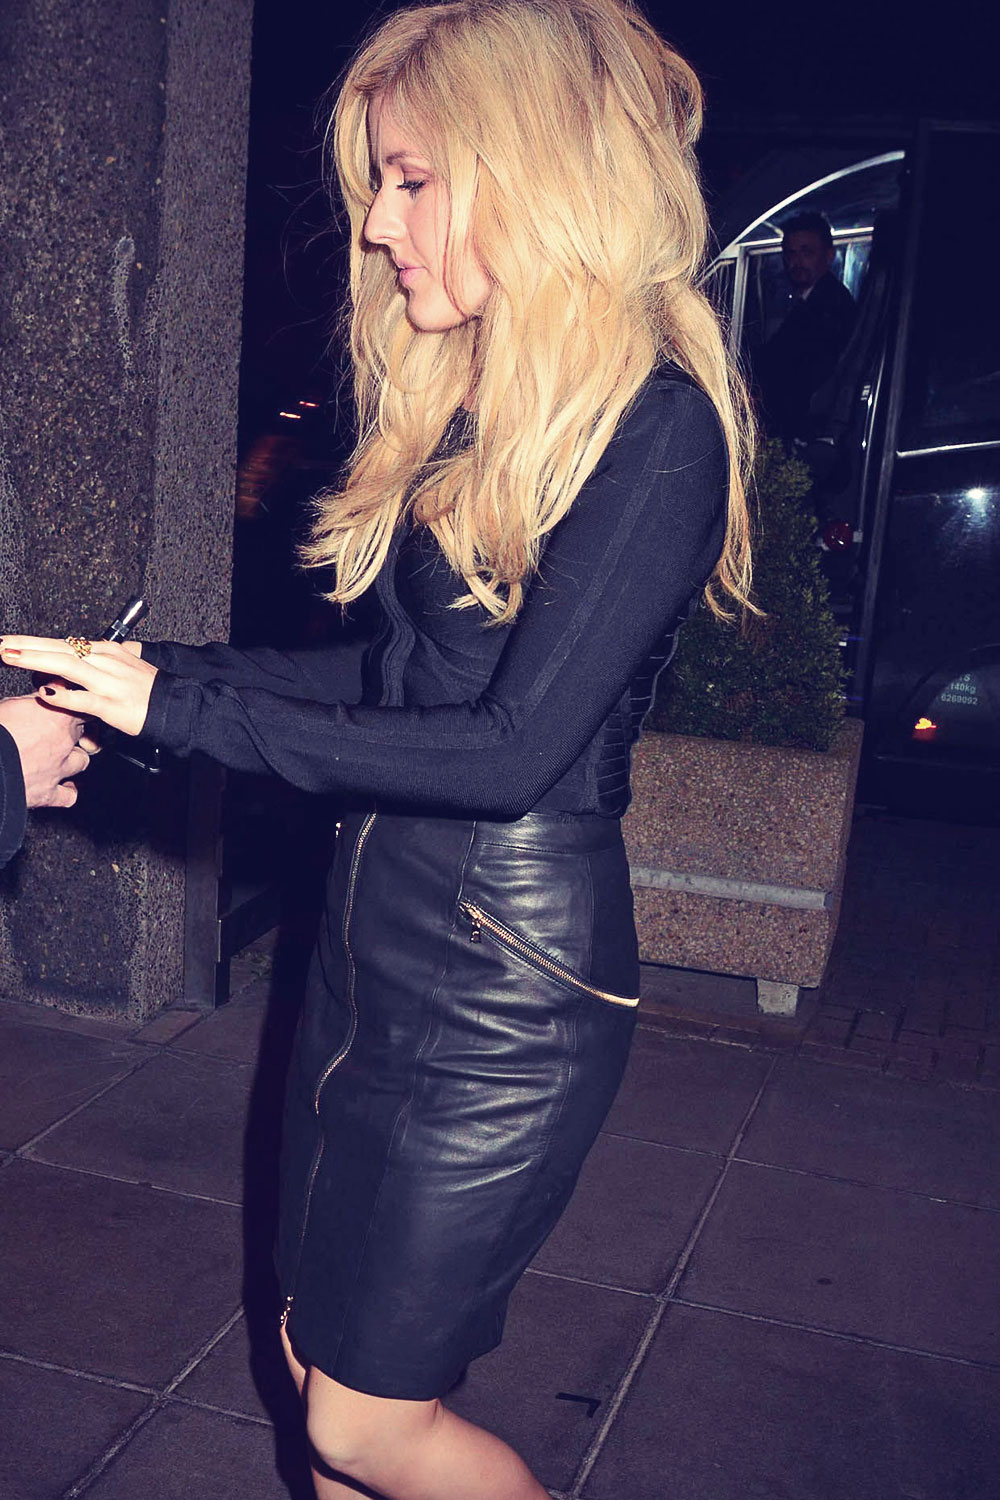 Ellie Goulding arriving at RTE studios for The Late Late Show